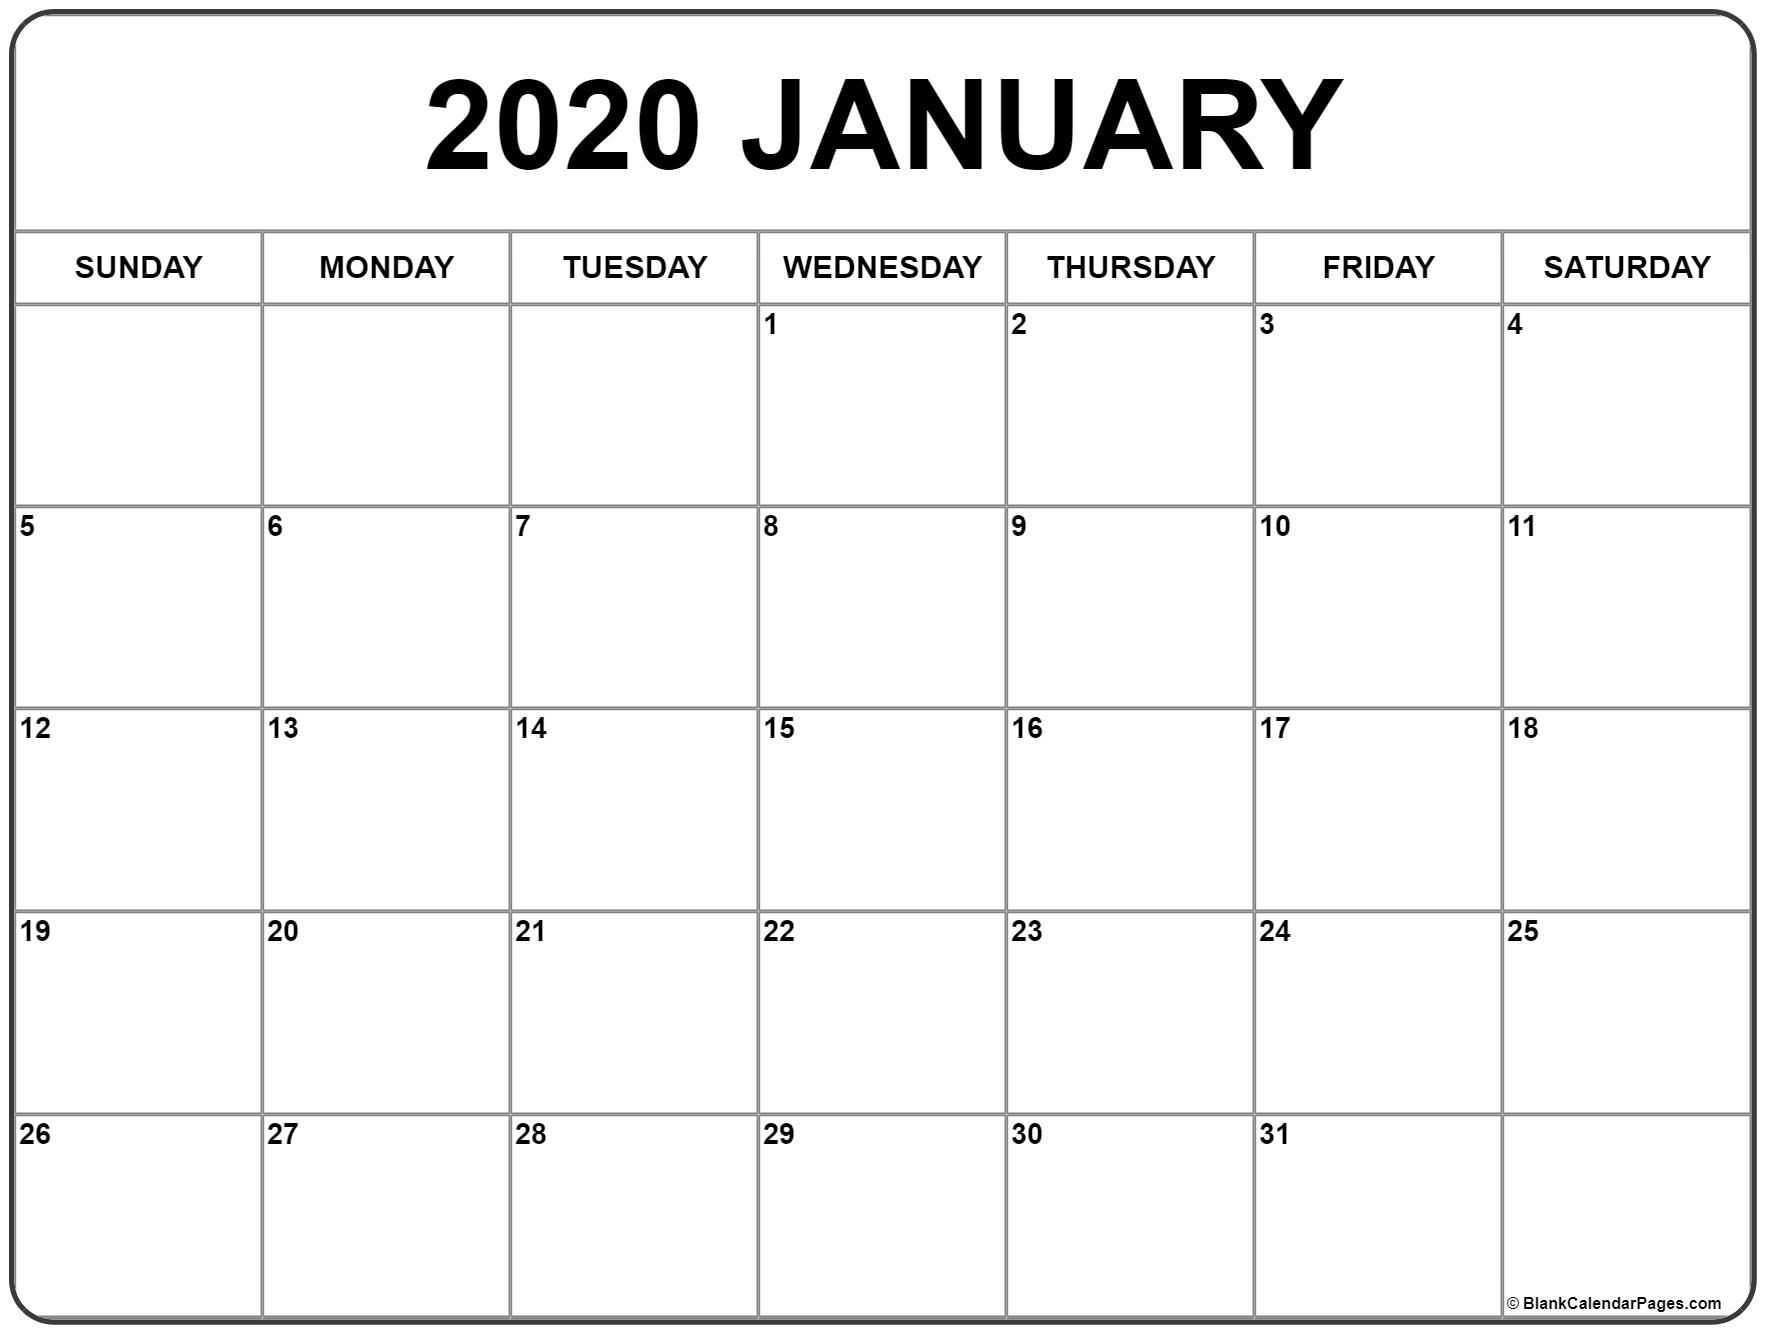 Free Calendar Template 2020 Monthly - Teke.wpart.co